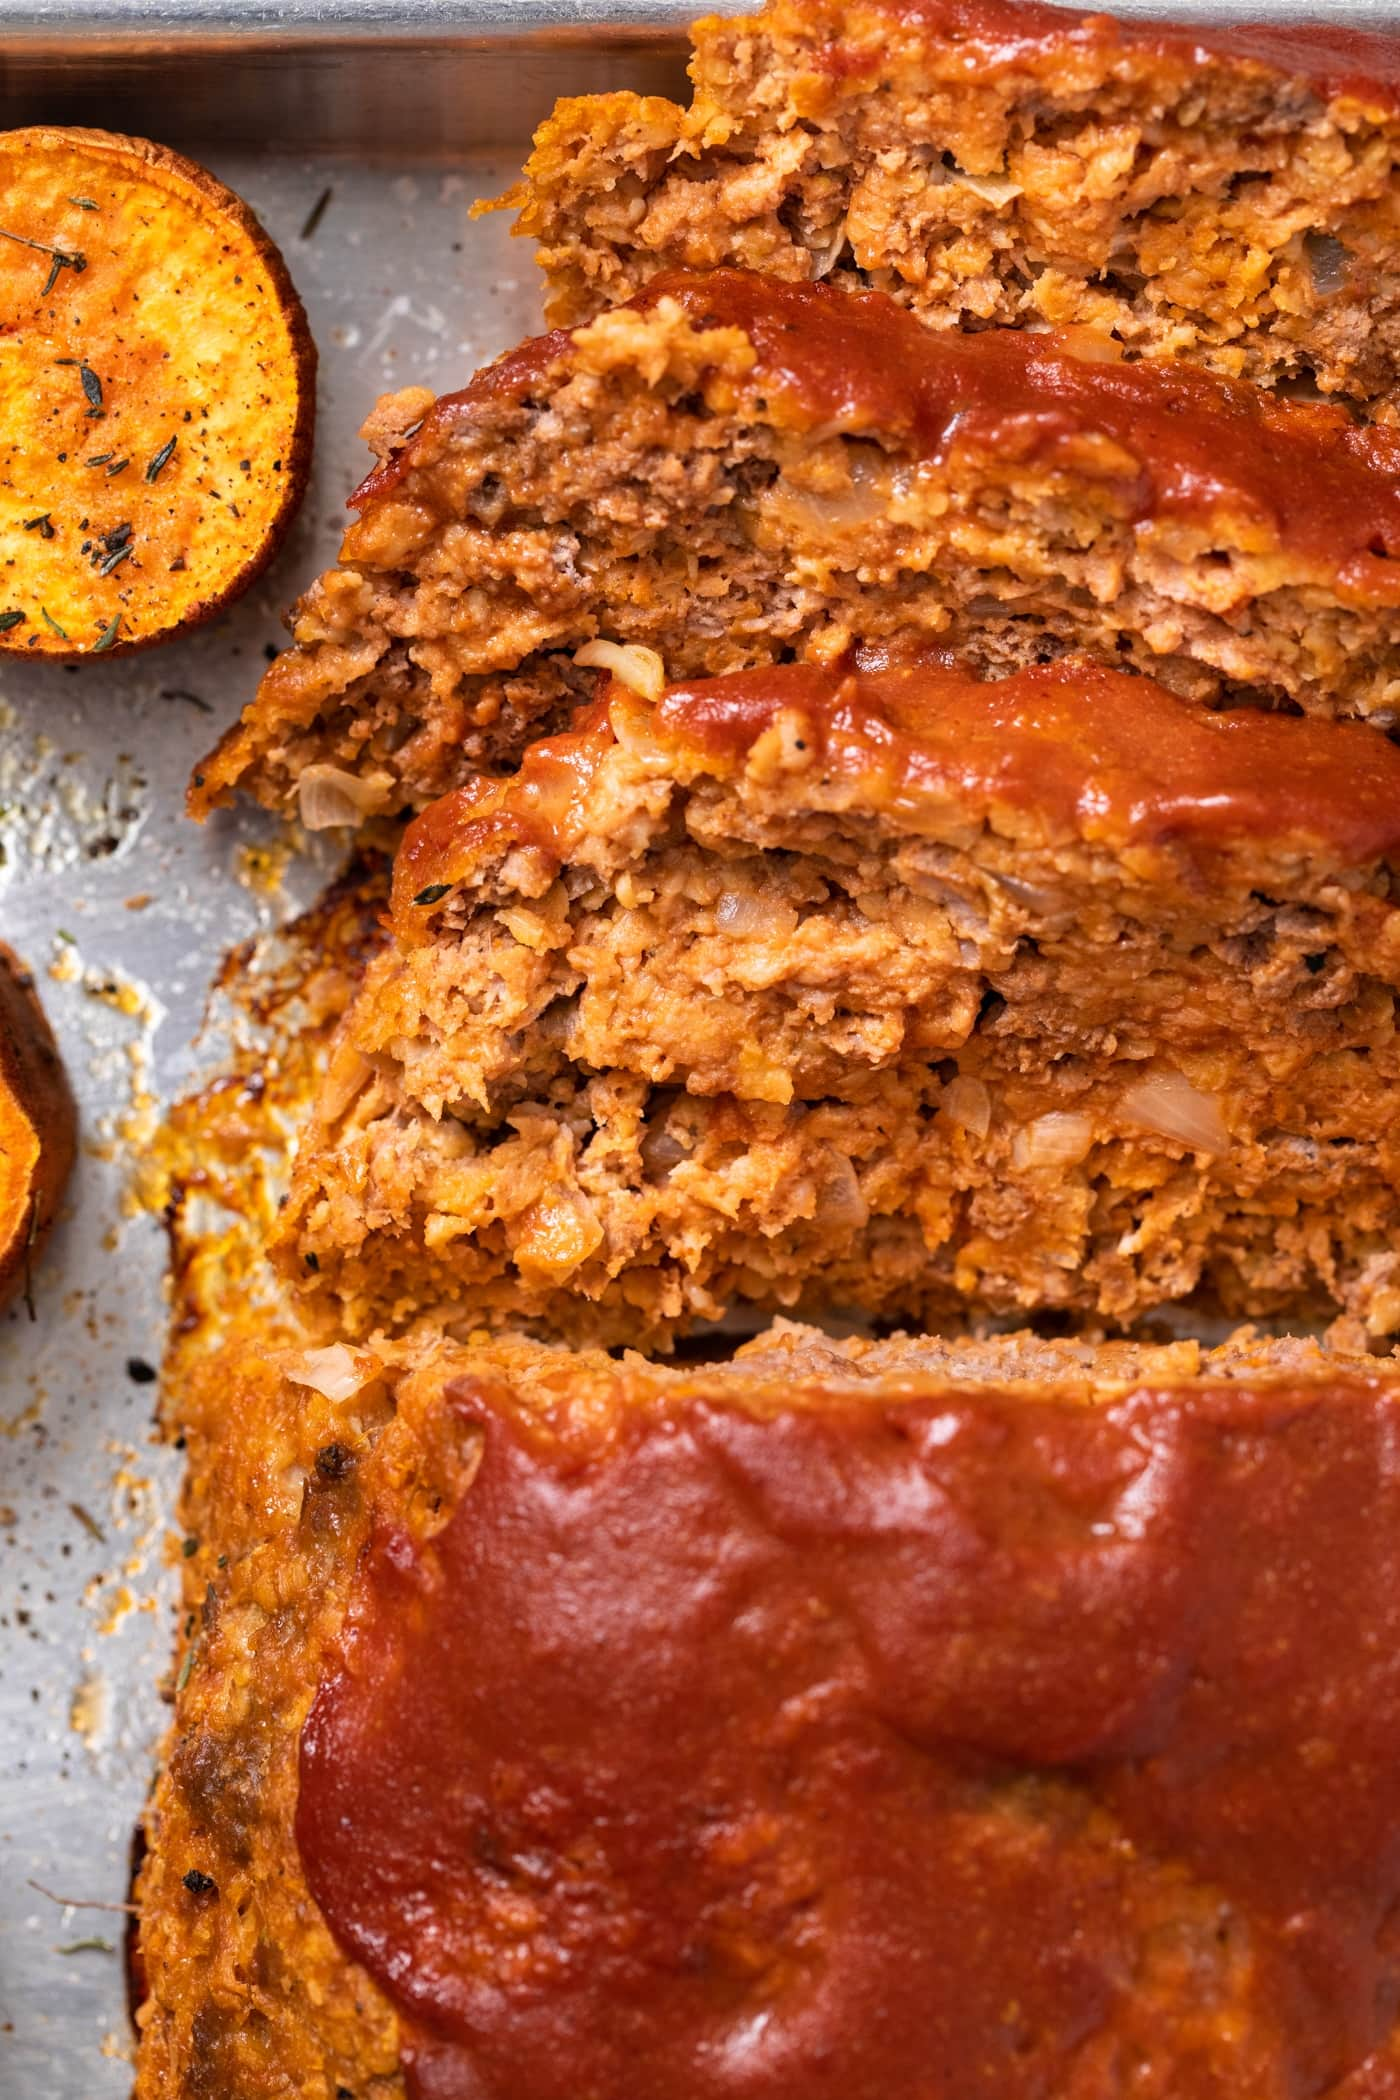 Close up top down view of slices of meatloaf laying on sides of sheet pan with one slice or orange colored sweet potato